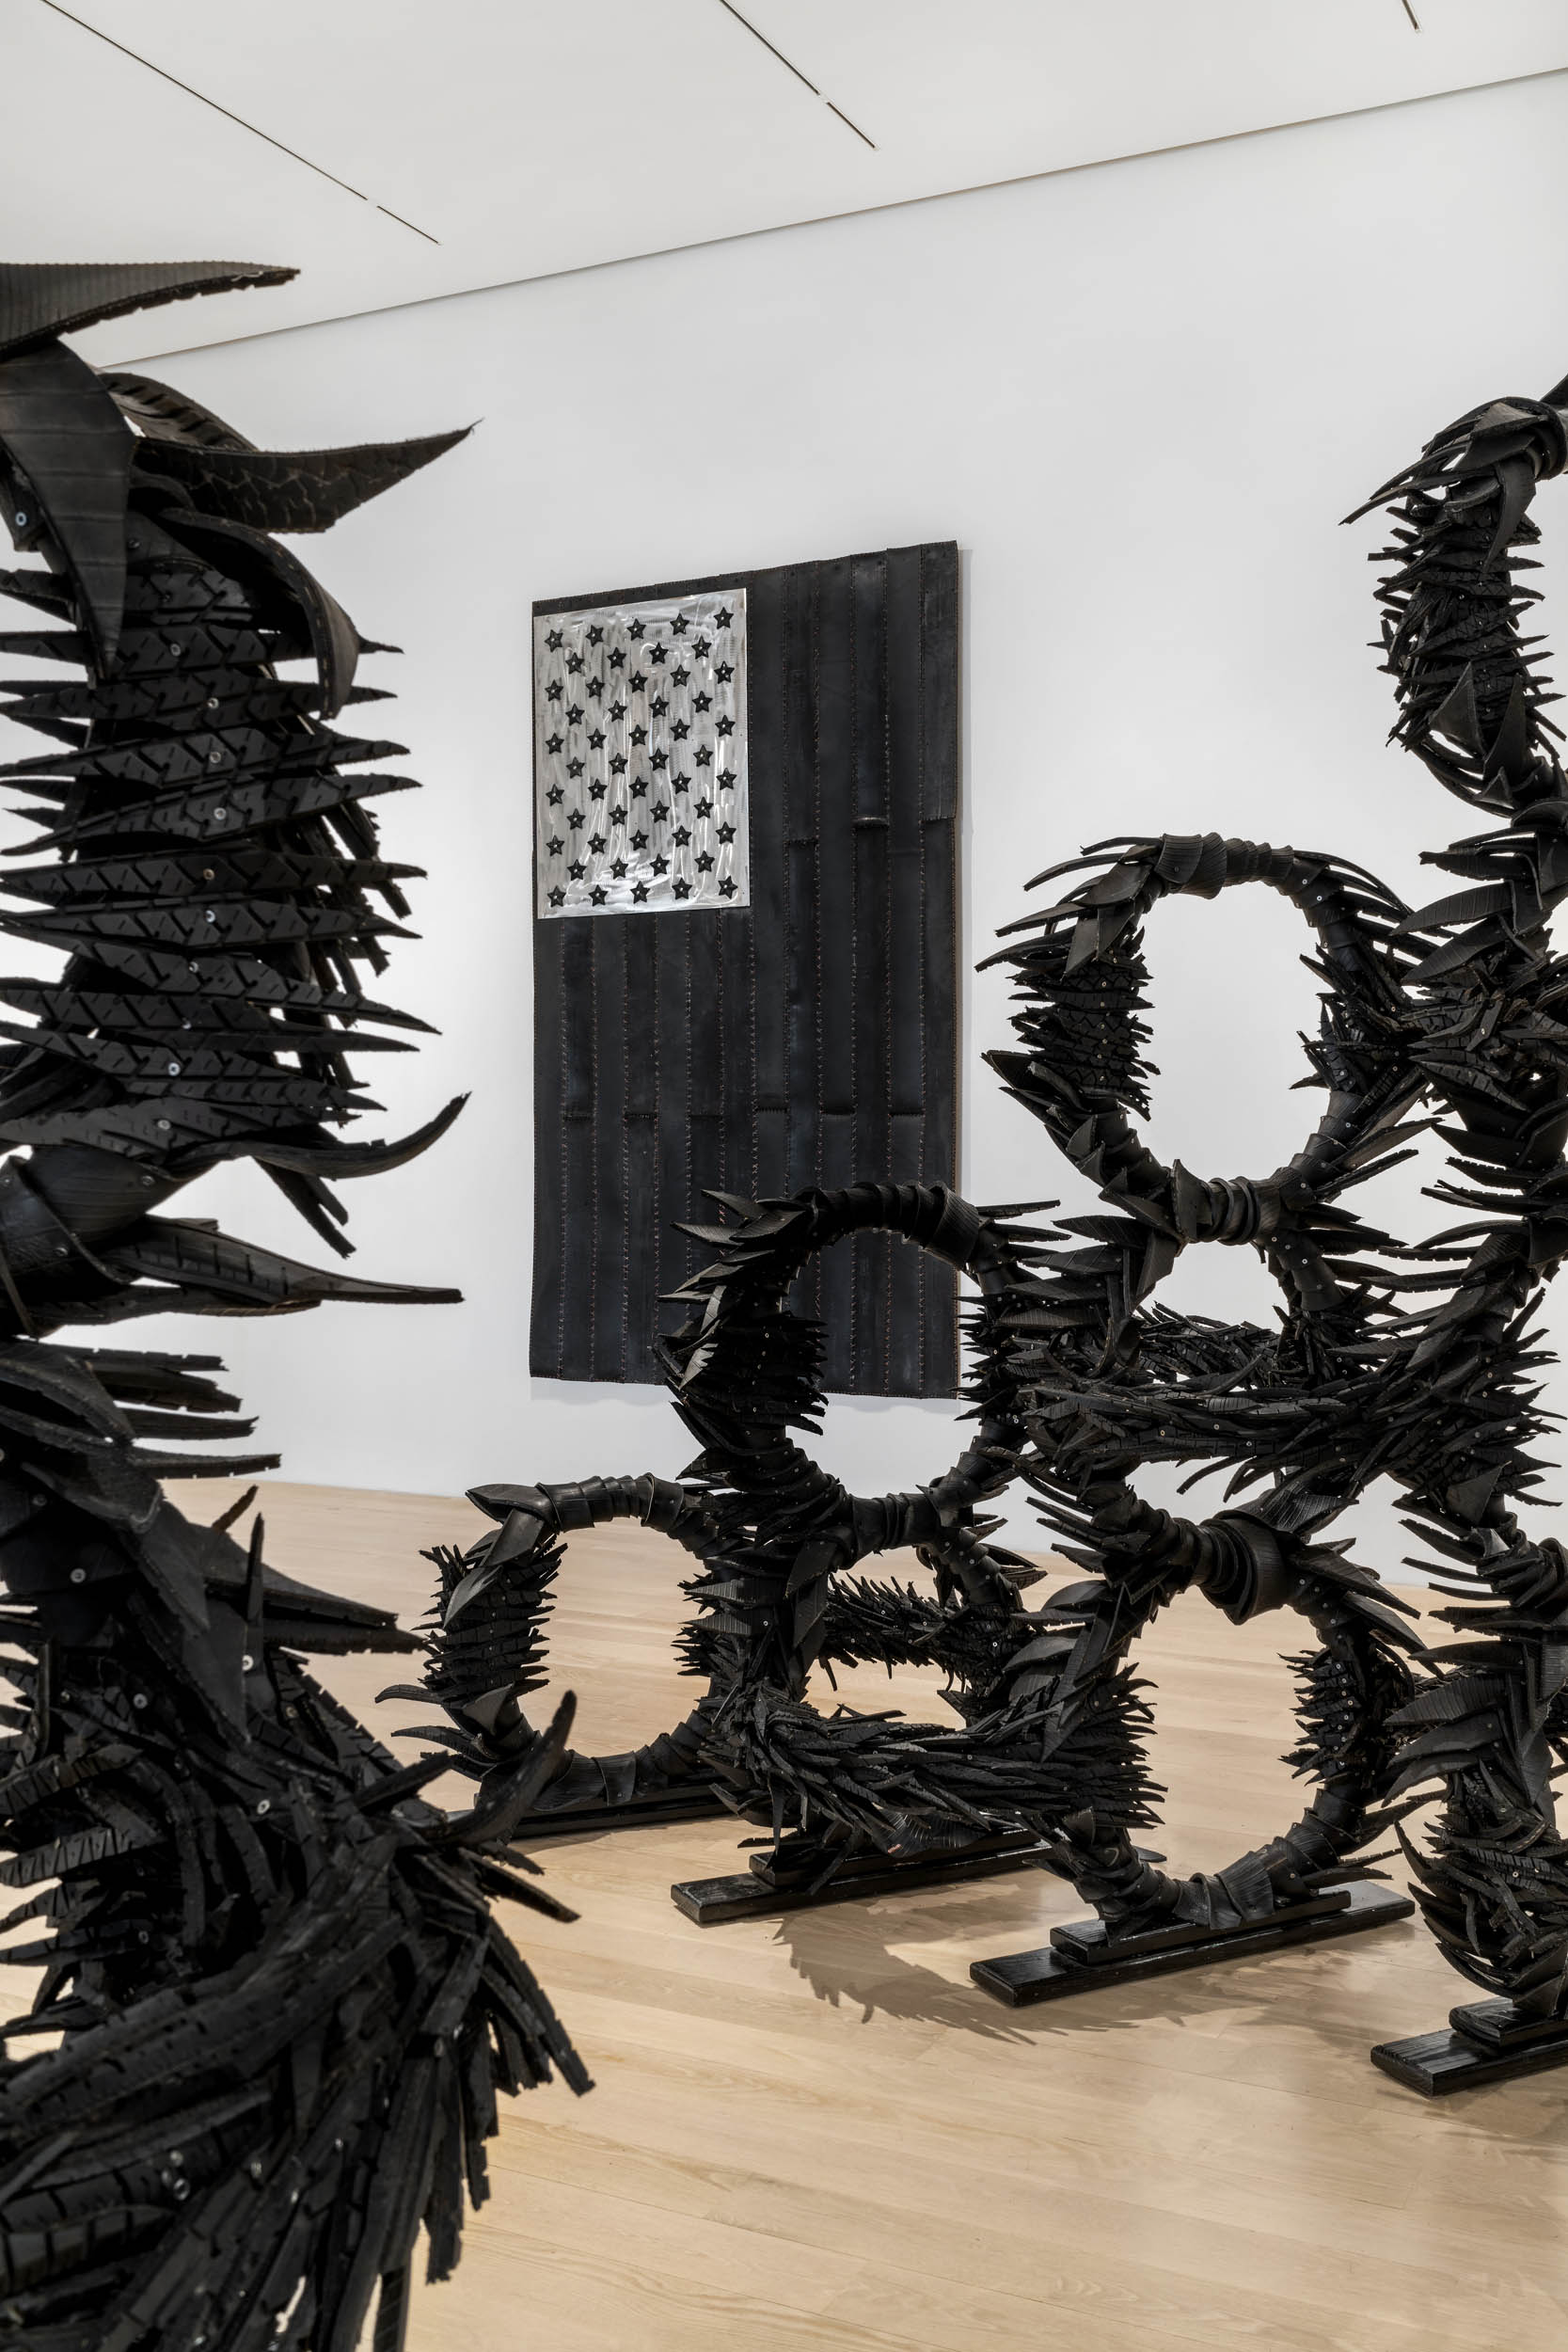 """Installation view: """"Chakaia Booker: The Observance"""" at the Institute of Contemporary Art, Miami. Apr 22 – Oct 31, 2021. Photo: Zachary Balber."""